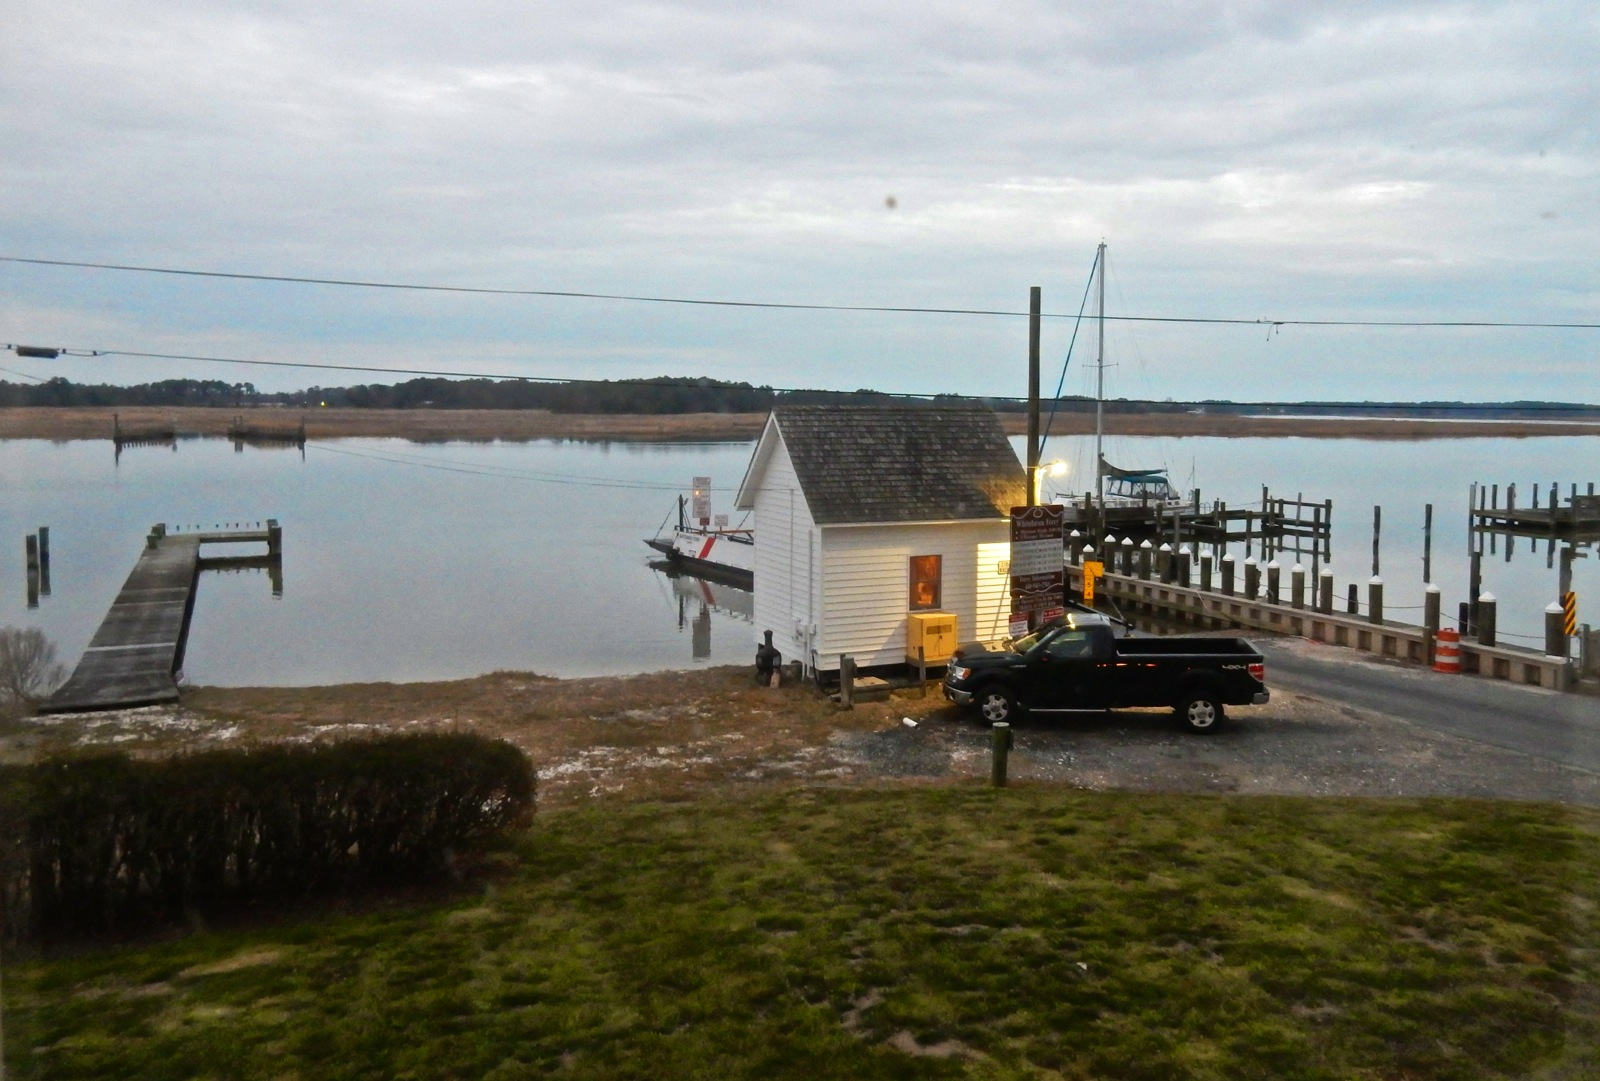 Romantic getaways in Maryland list includes the Whitehaven Ferry.